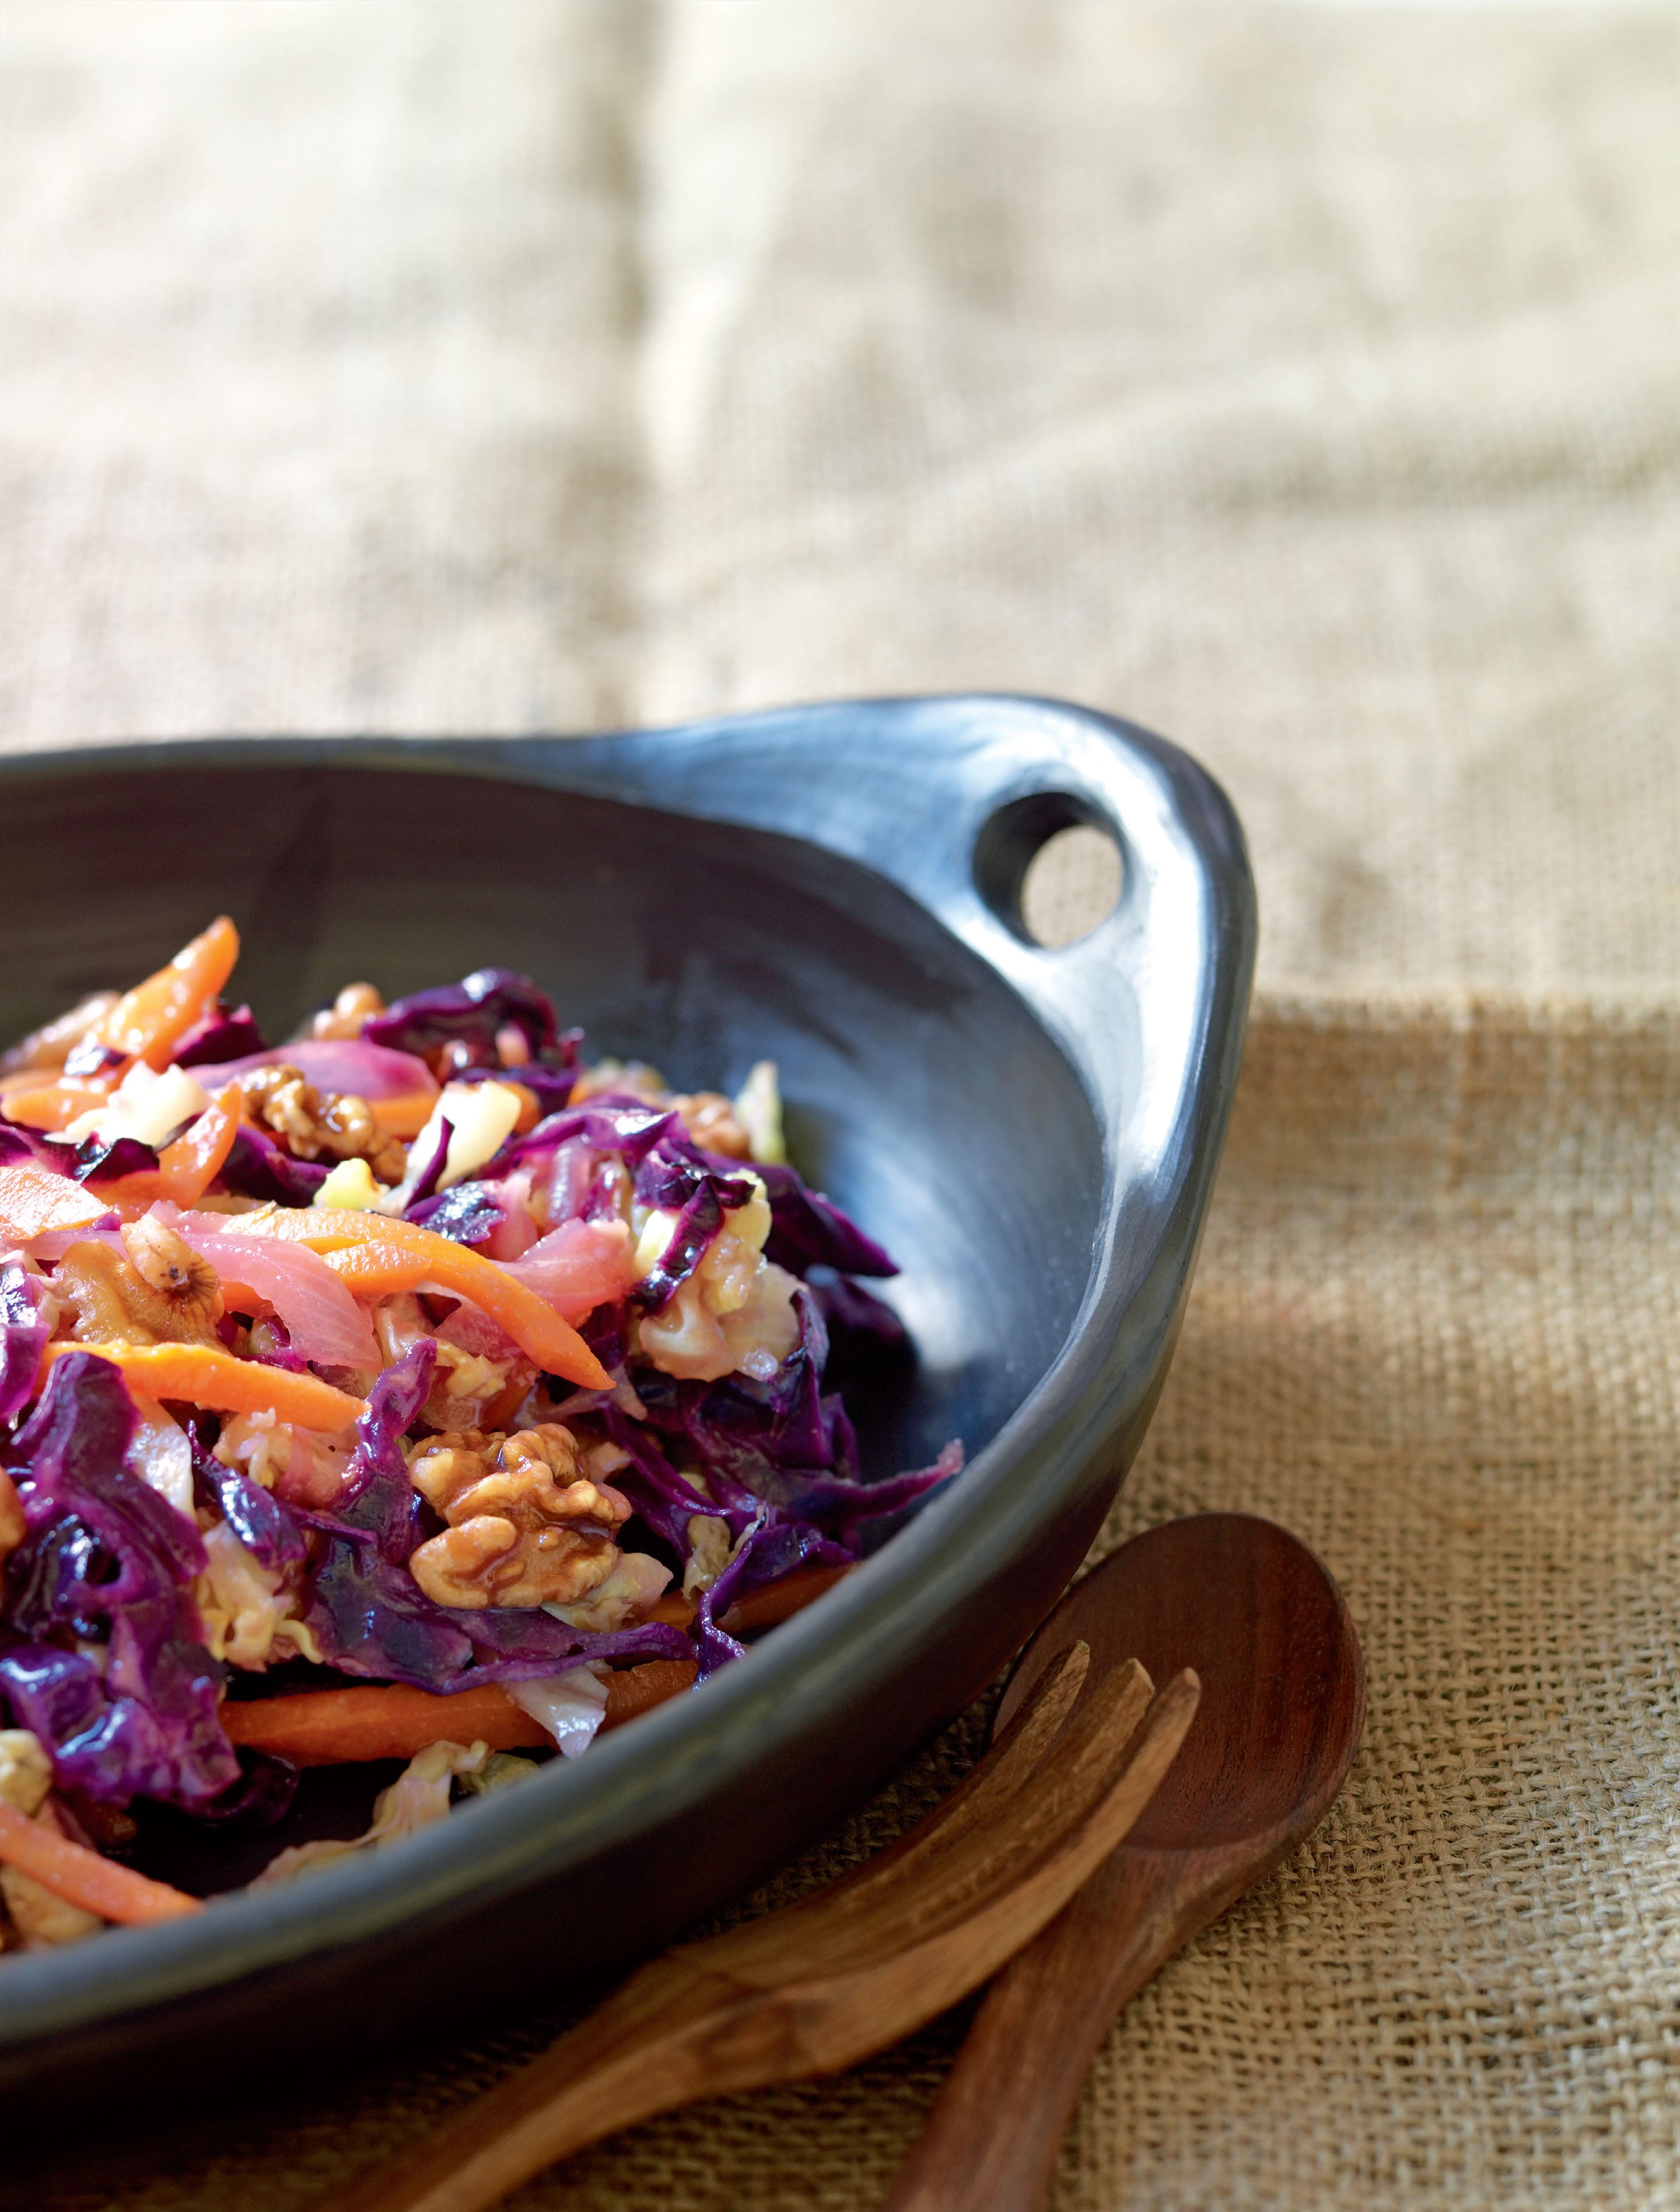 Braised cabbage and carrots with roasted walnuts